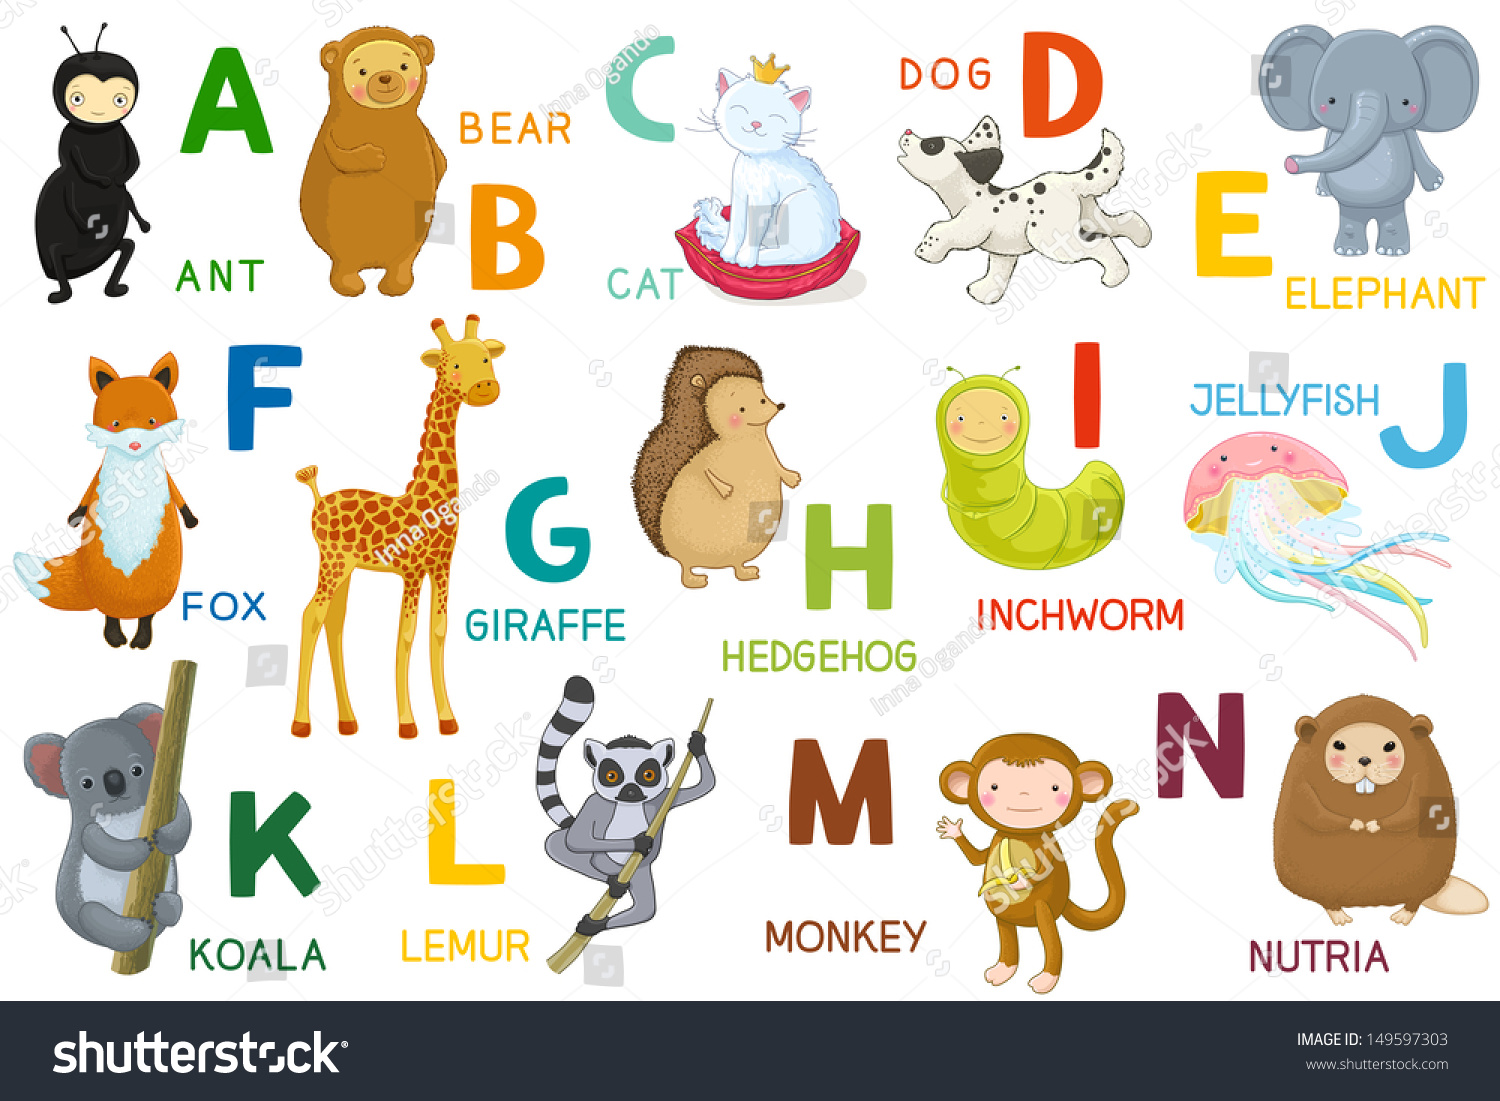 royalty-free animals abc, letter a-n. cartoon… #149597303 stock